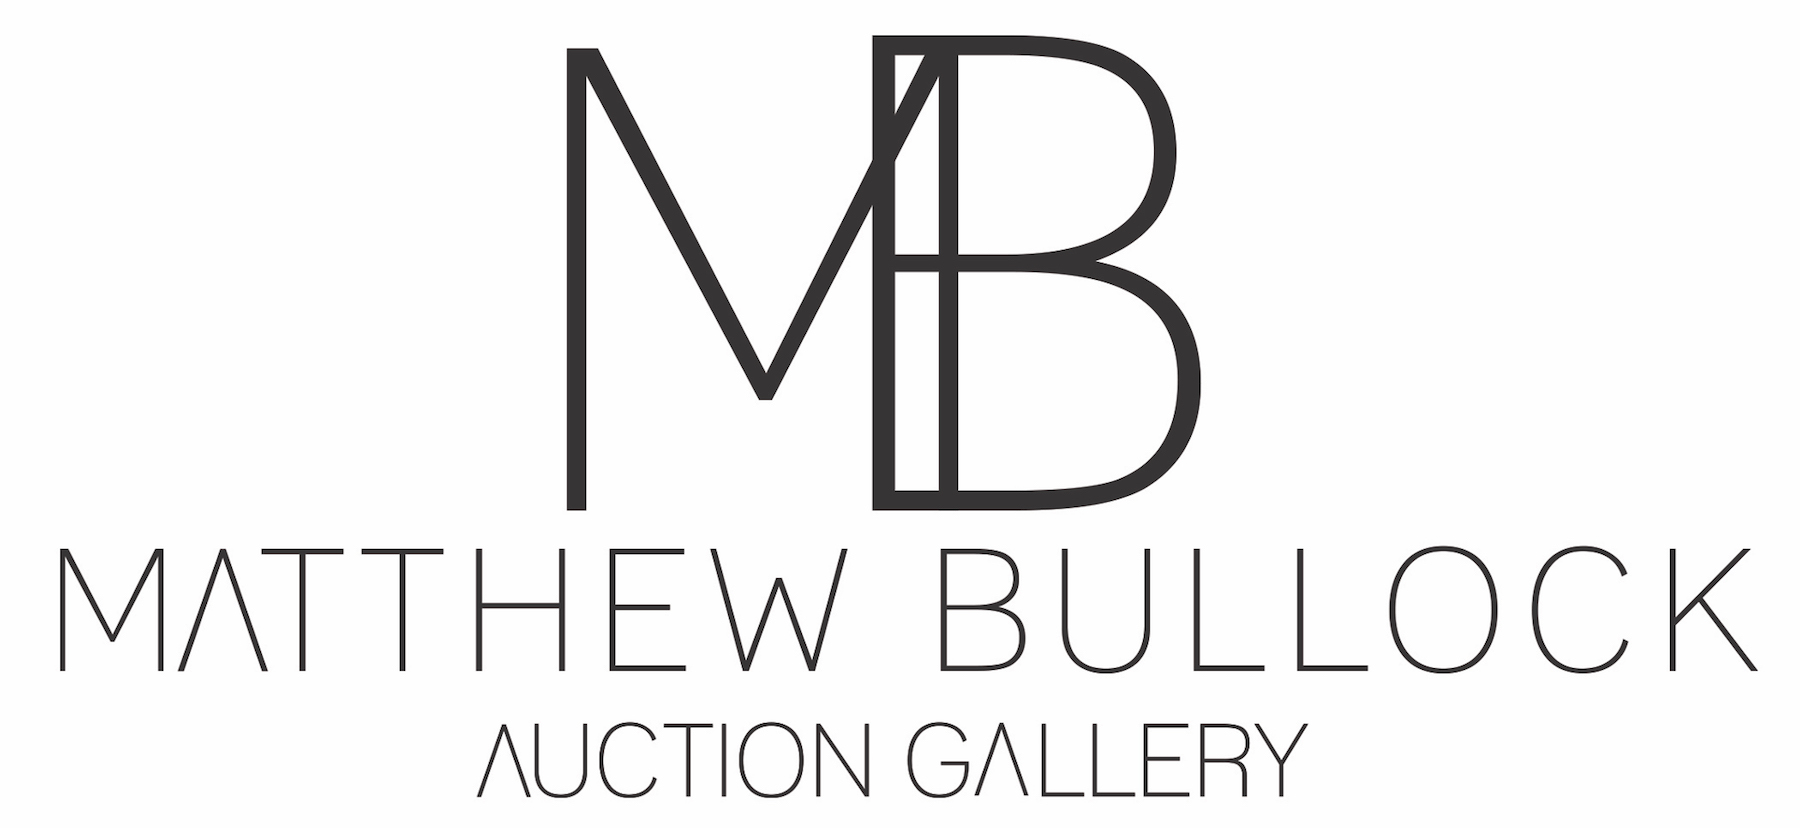 MATTHEW BULLOCK AUCTIONEERS